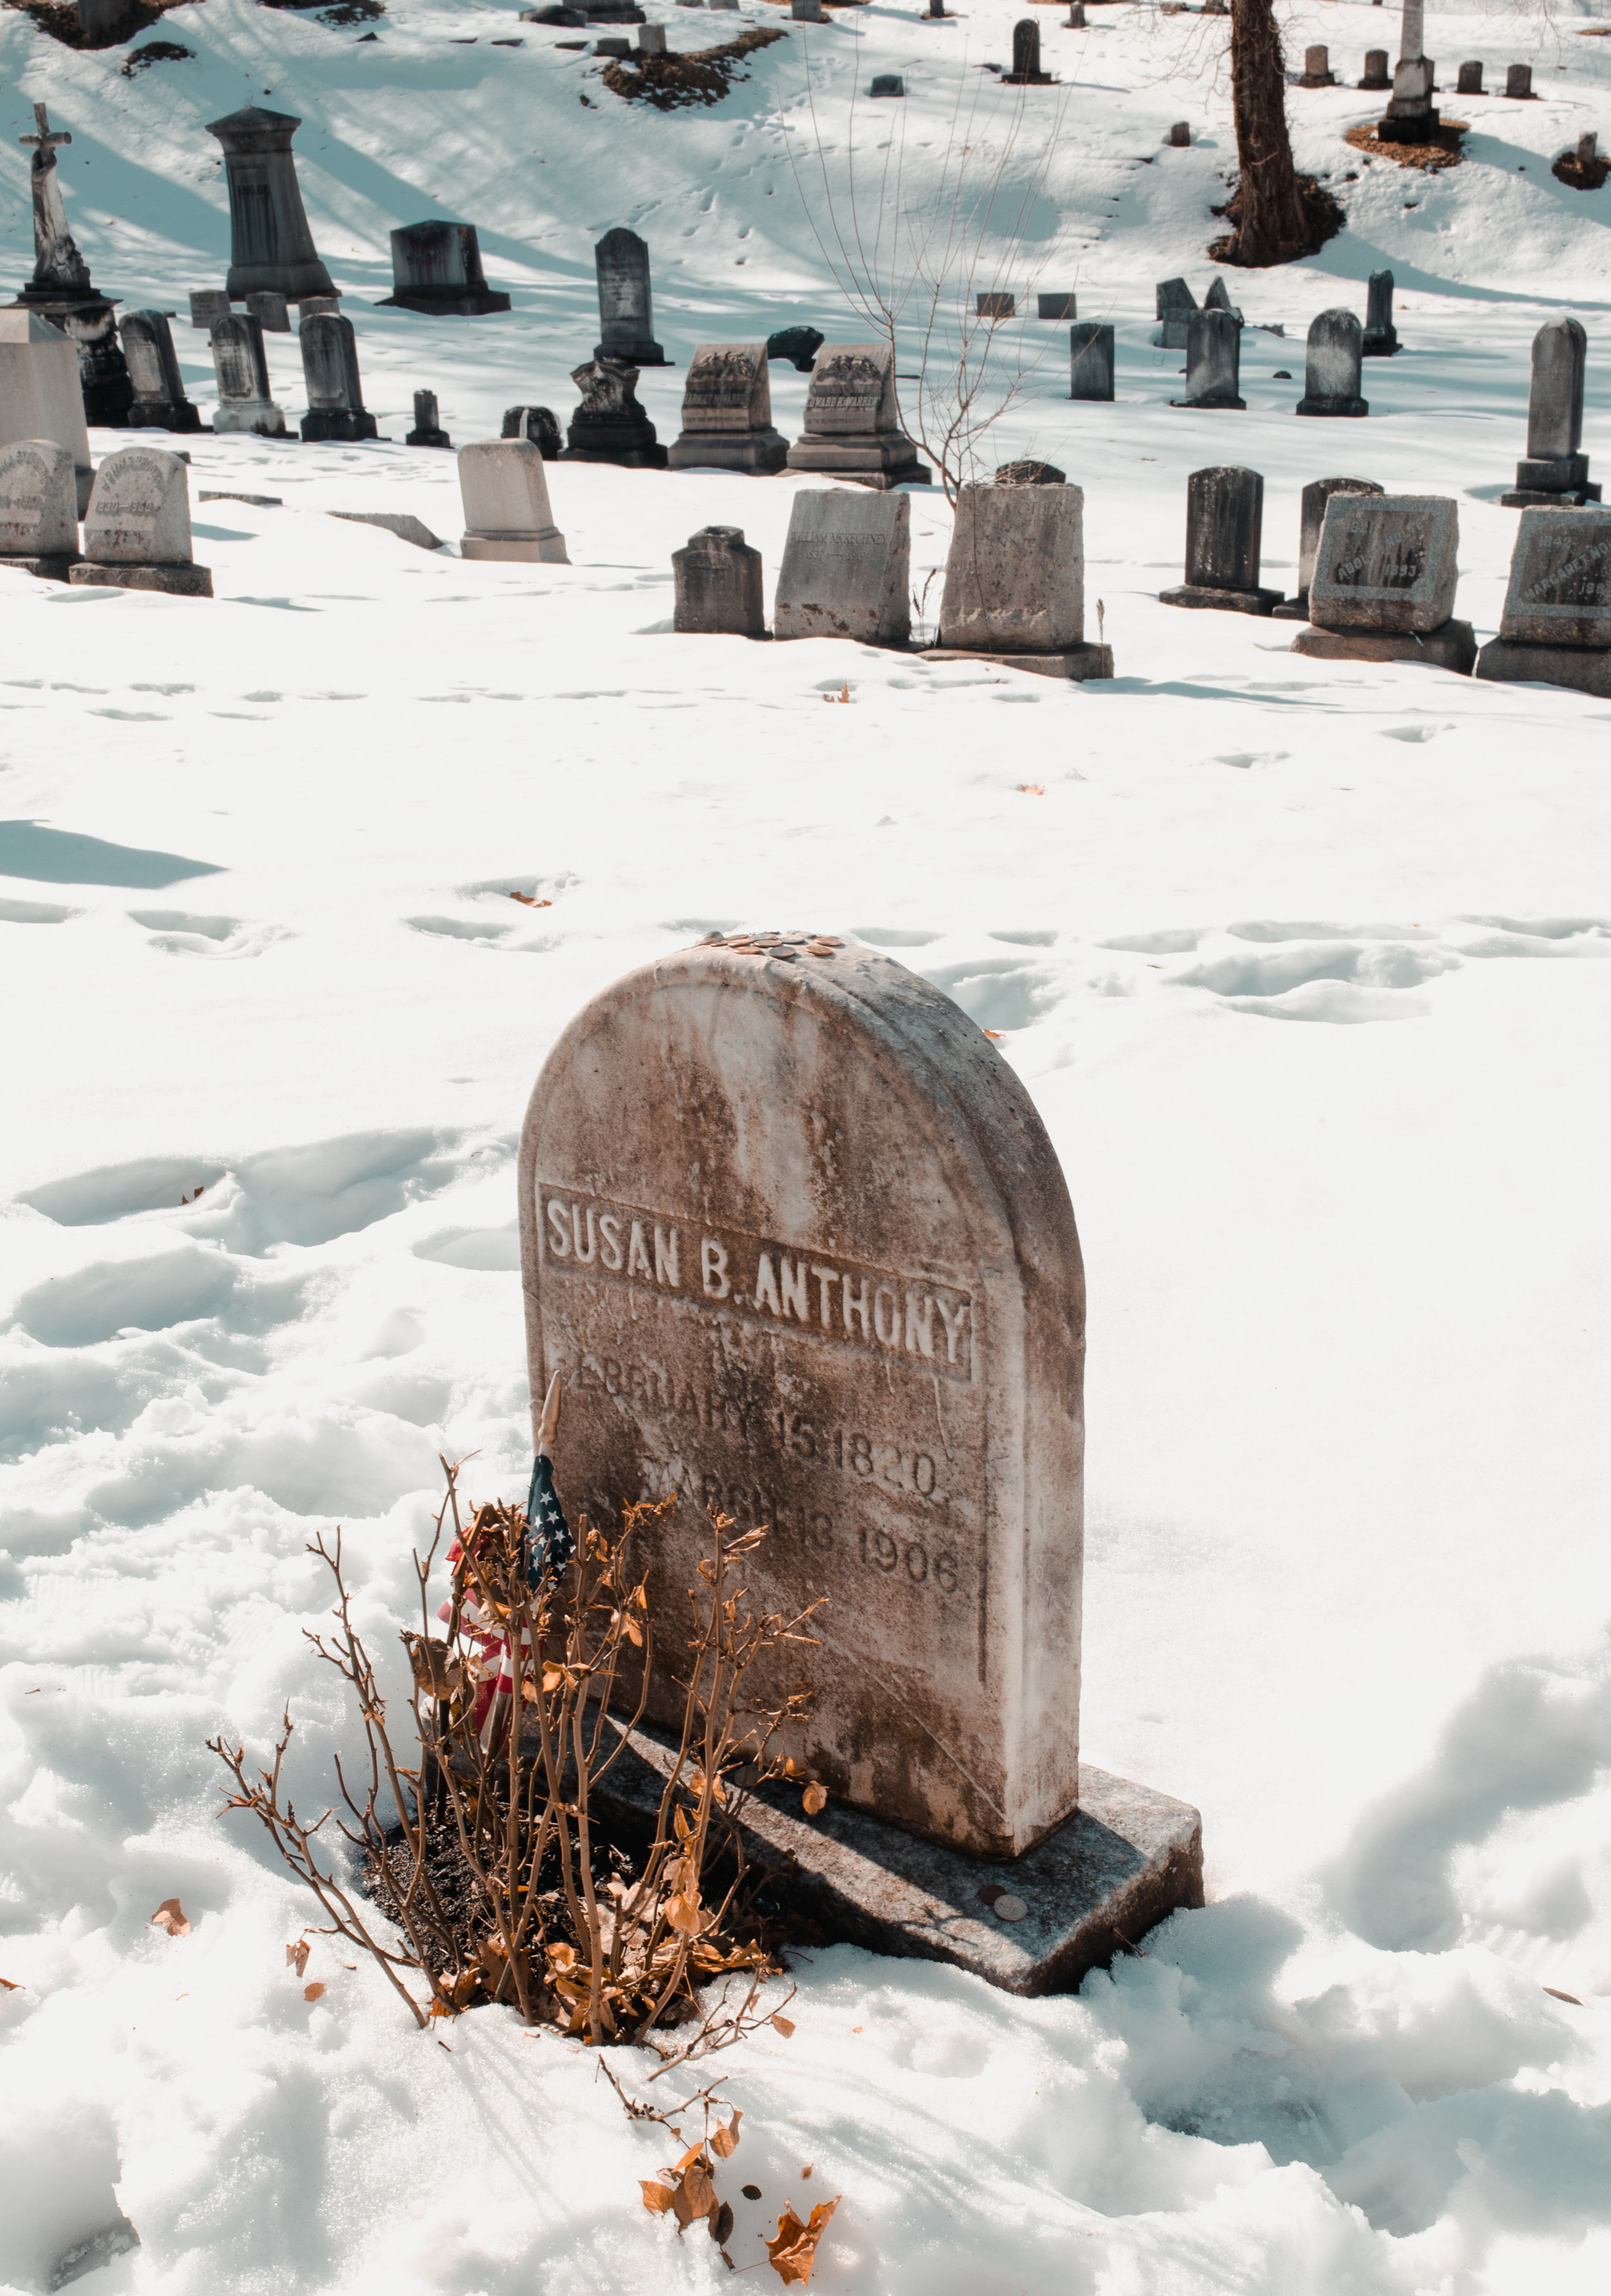 The grave of Susan B. Anthony located in Rochester. || Photo credit to Marina Barham